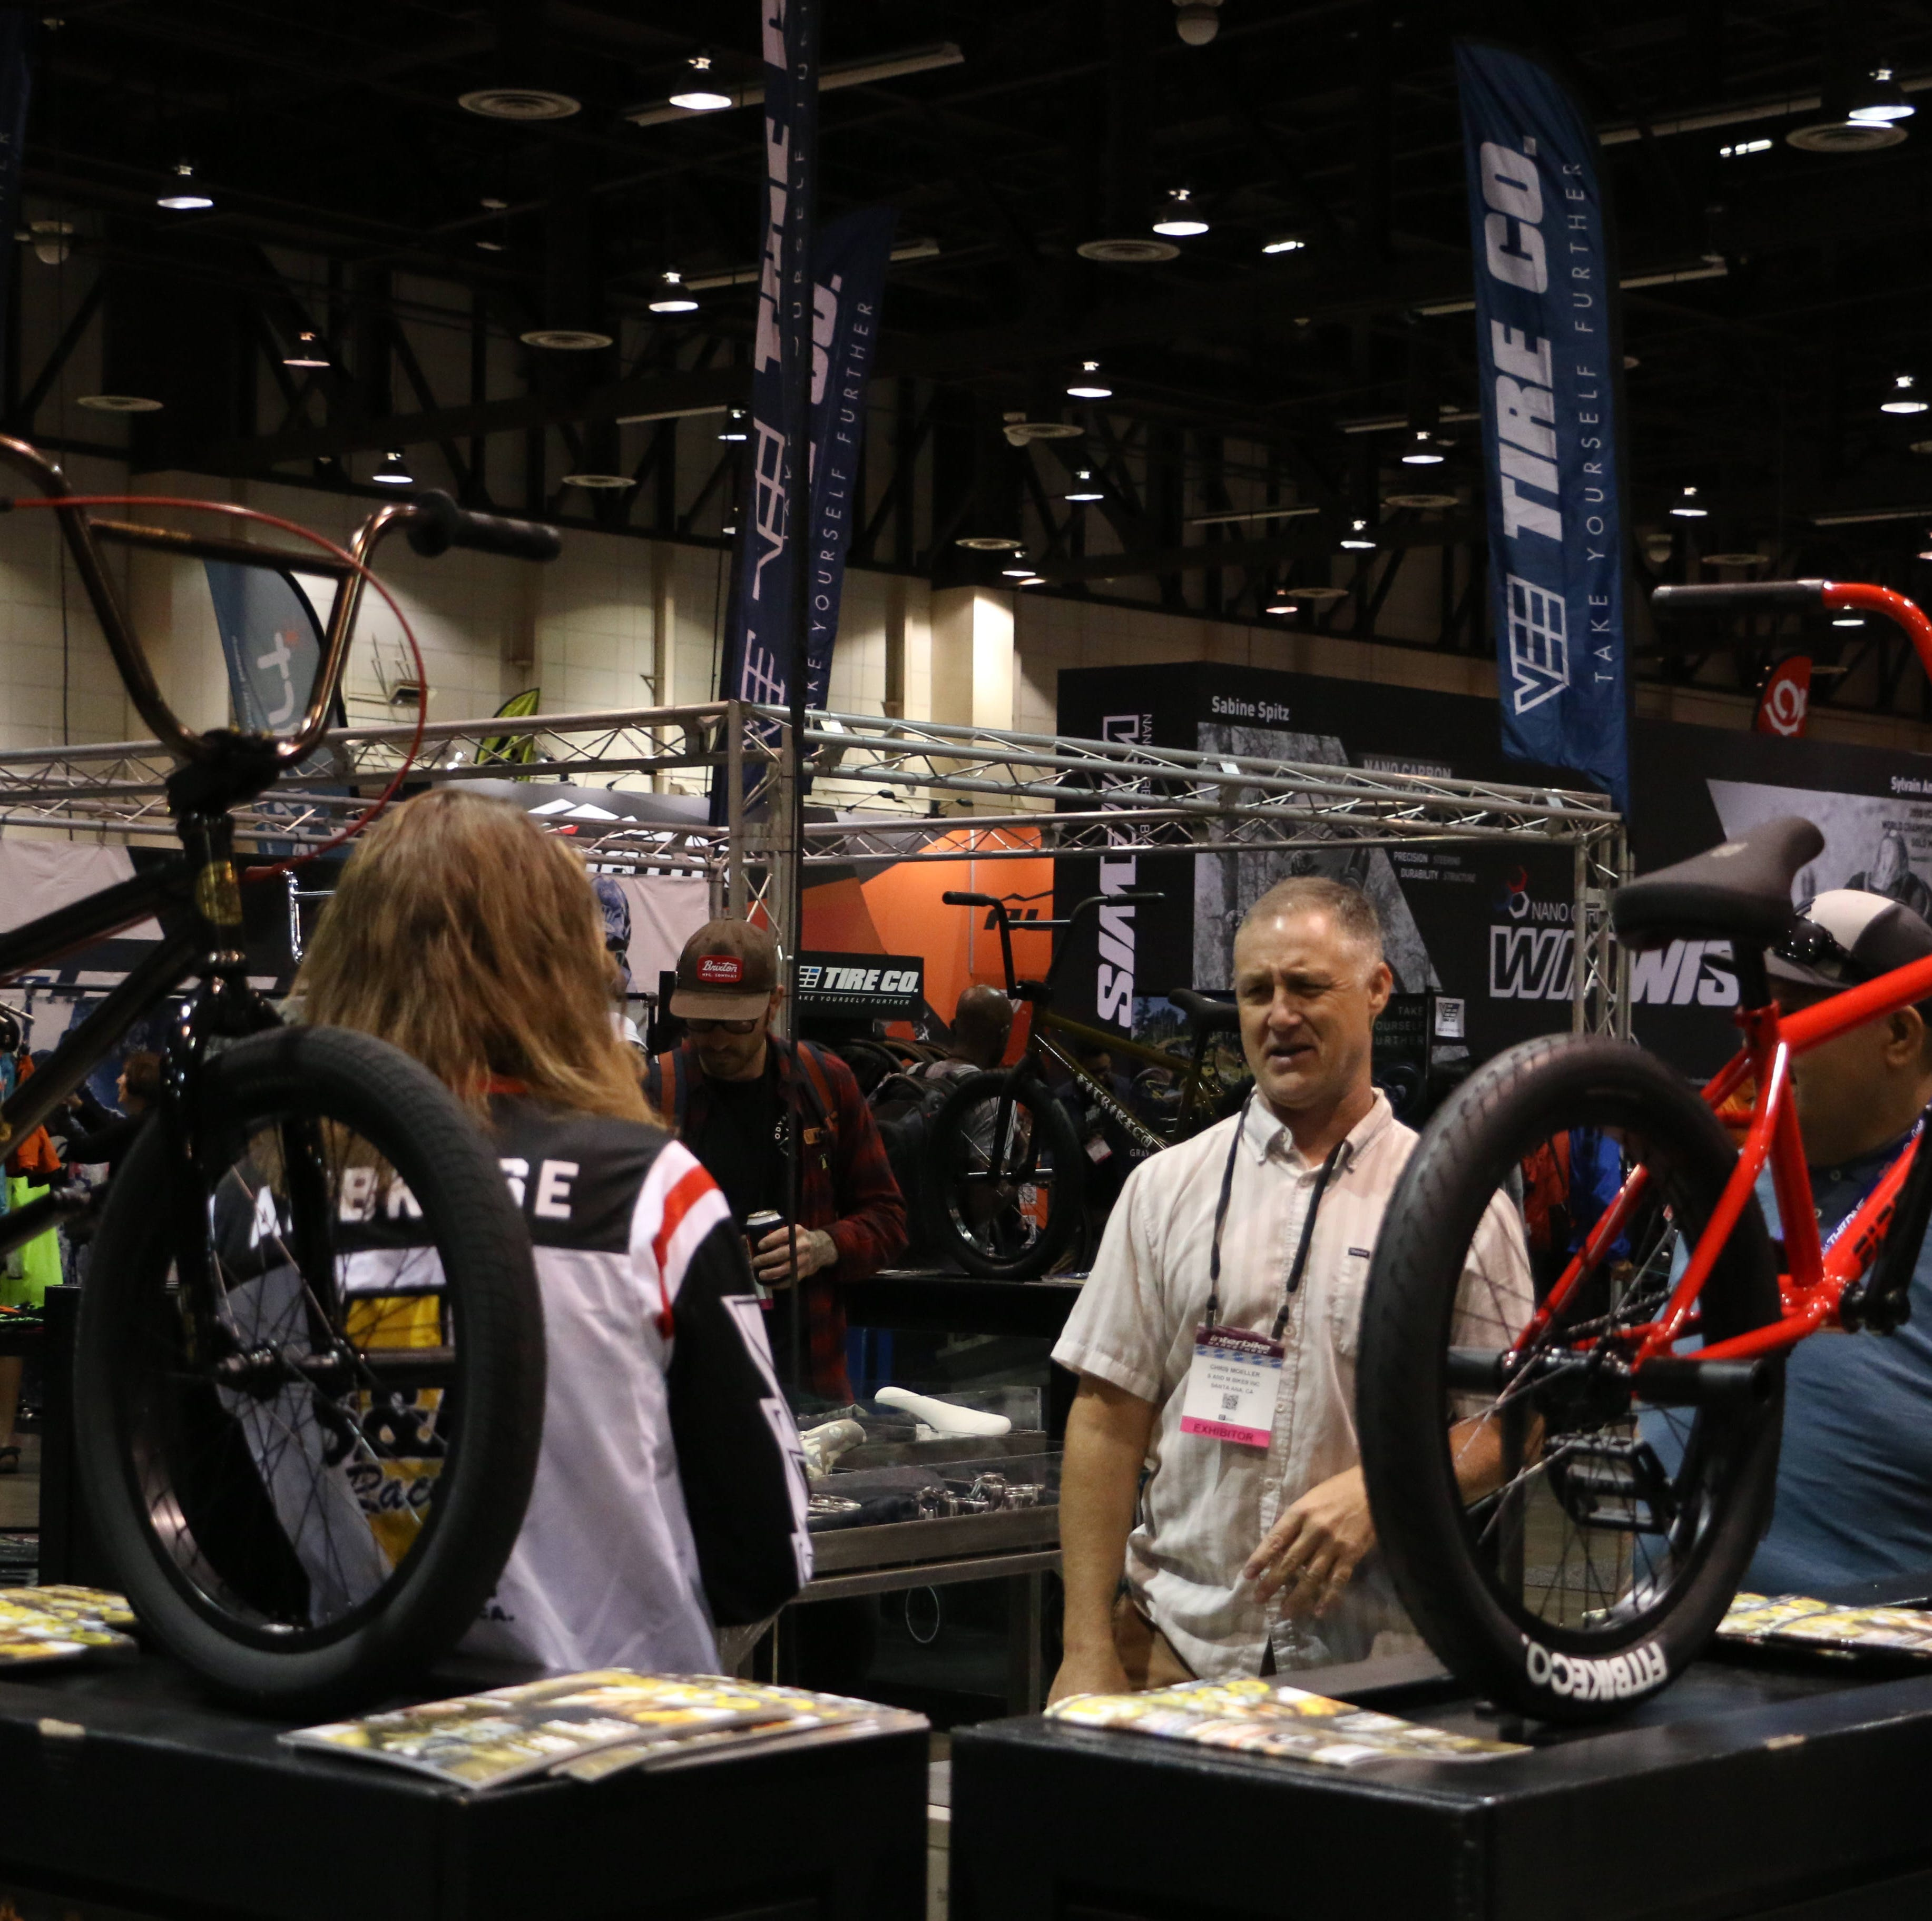 Interbike 2019 cancellation not a reflection on Reno-Tahoe as convention site, says RSCVA